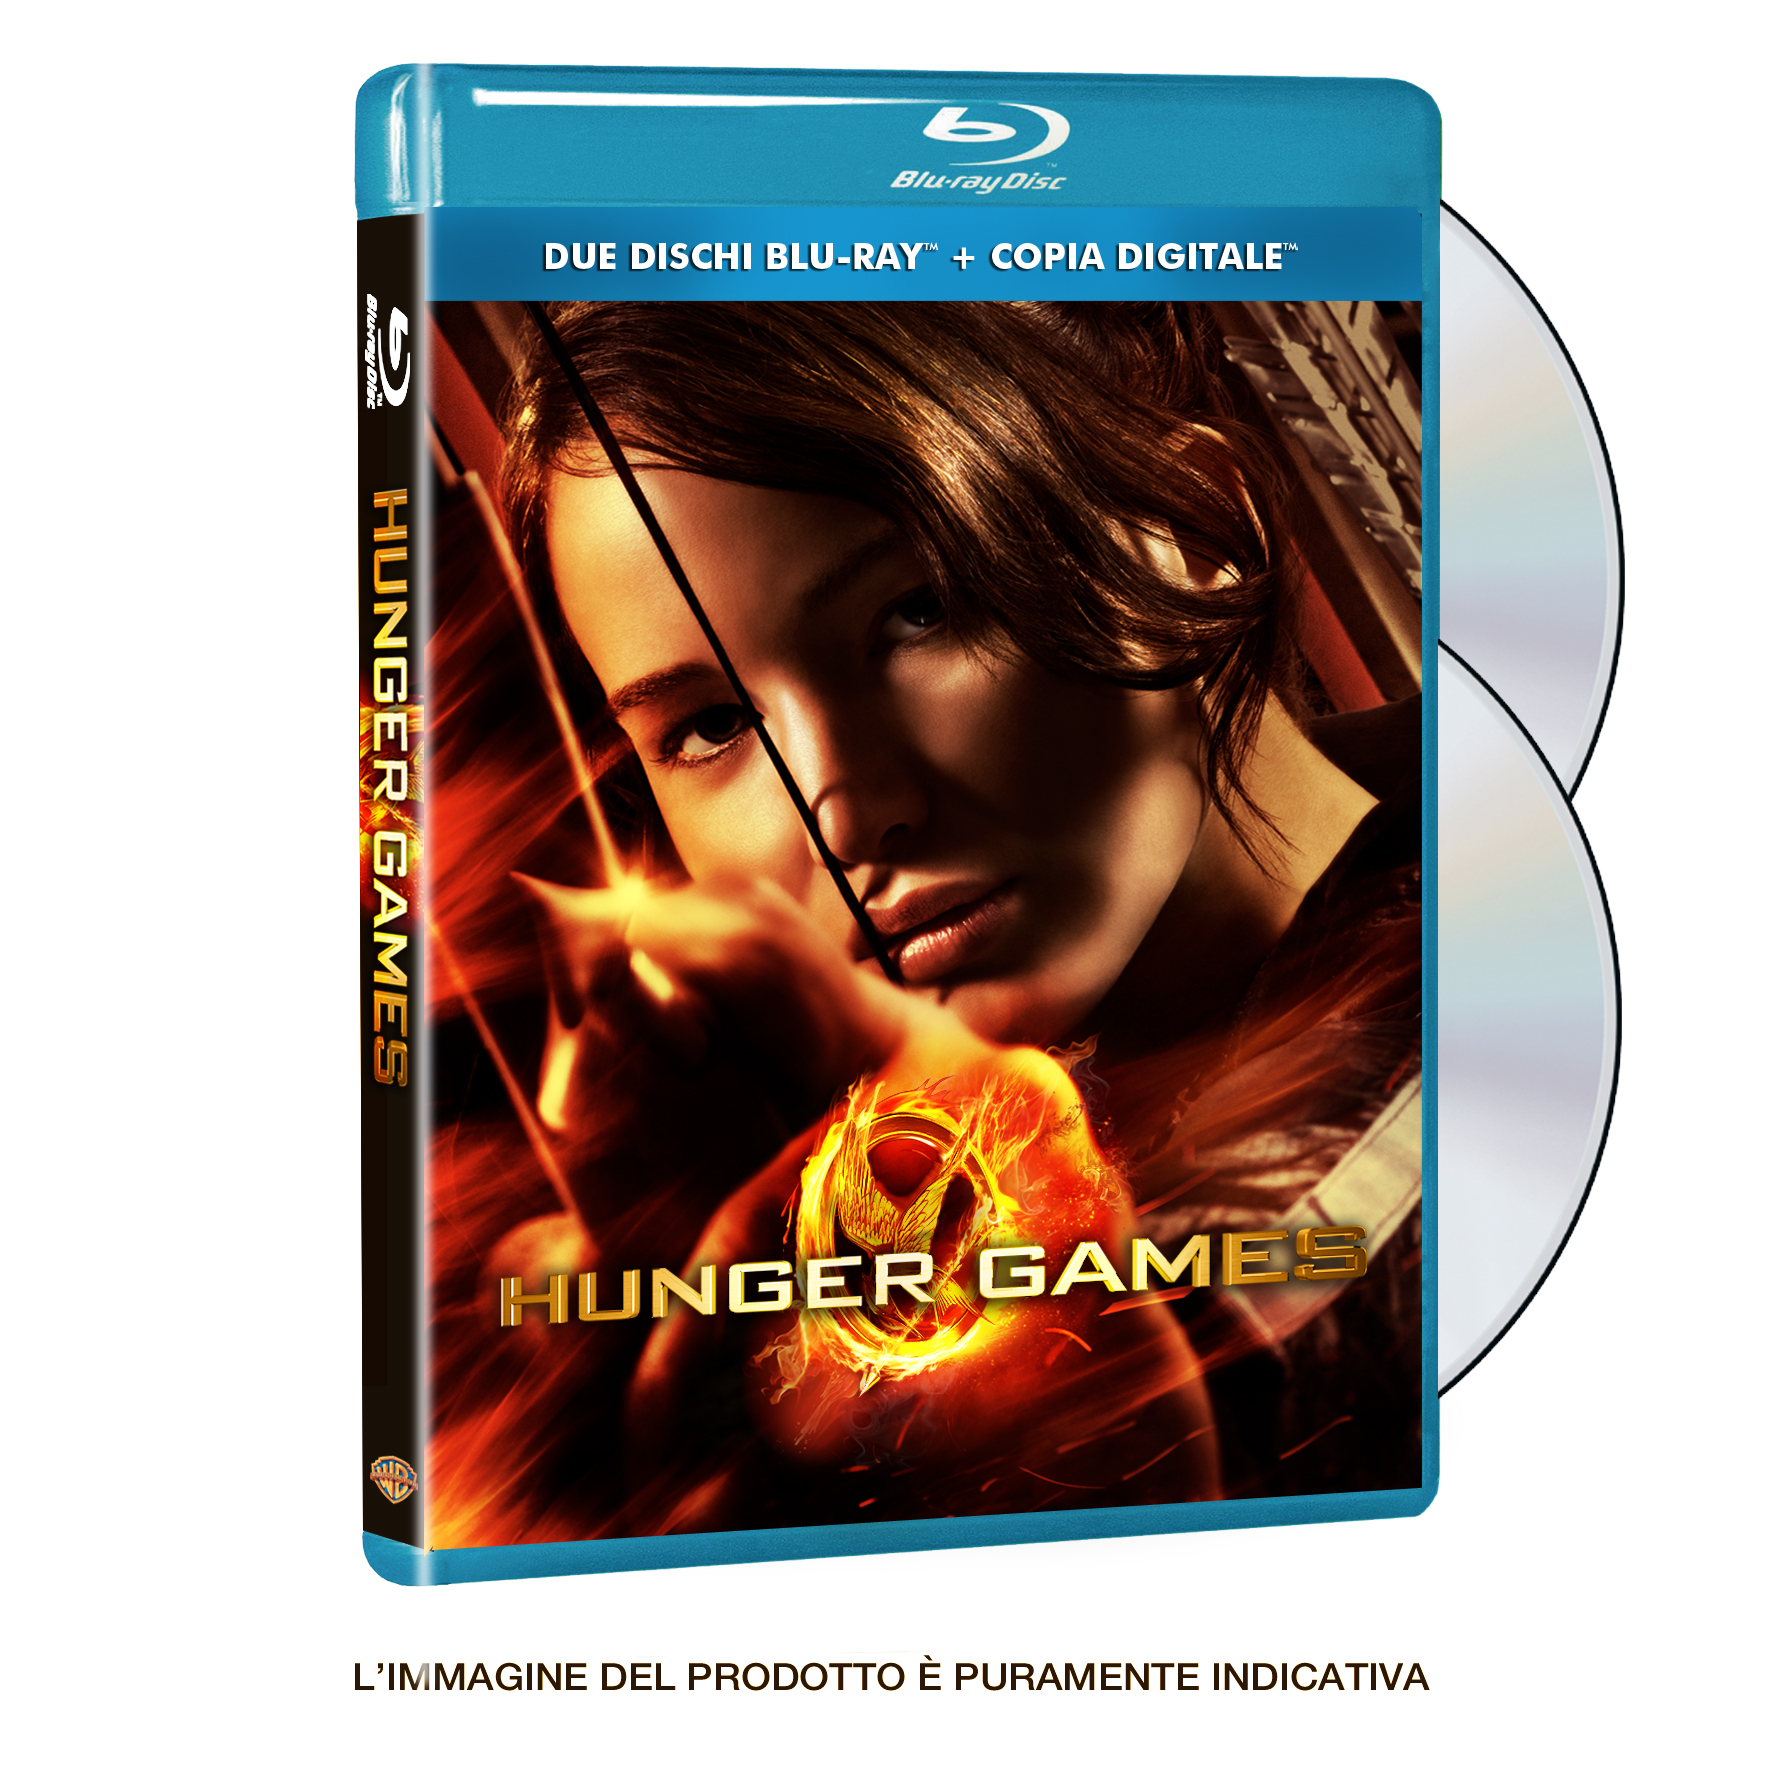 Hunger games blu-ray